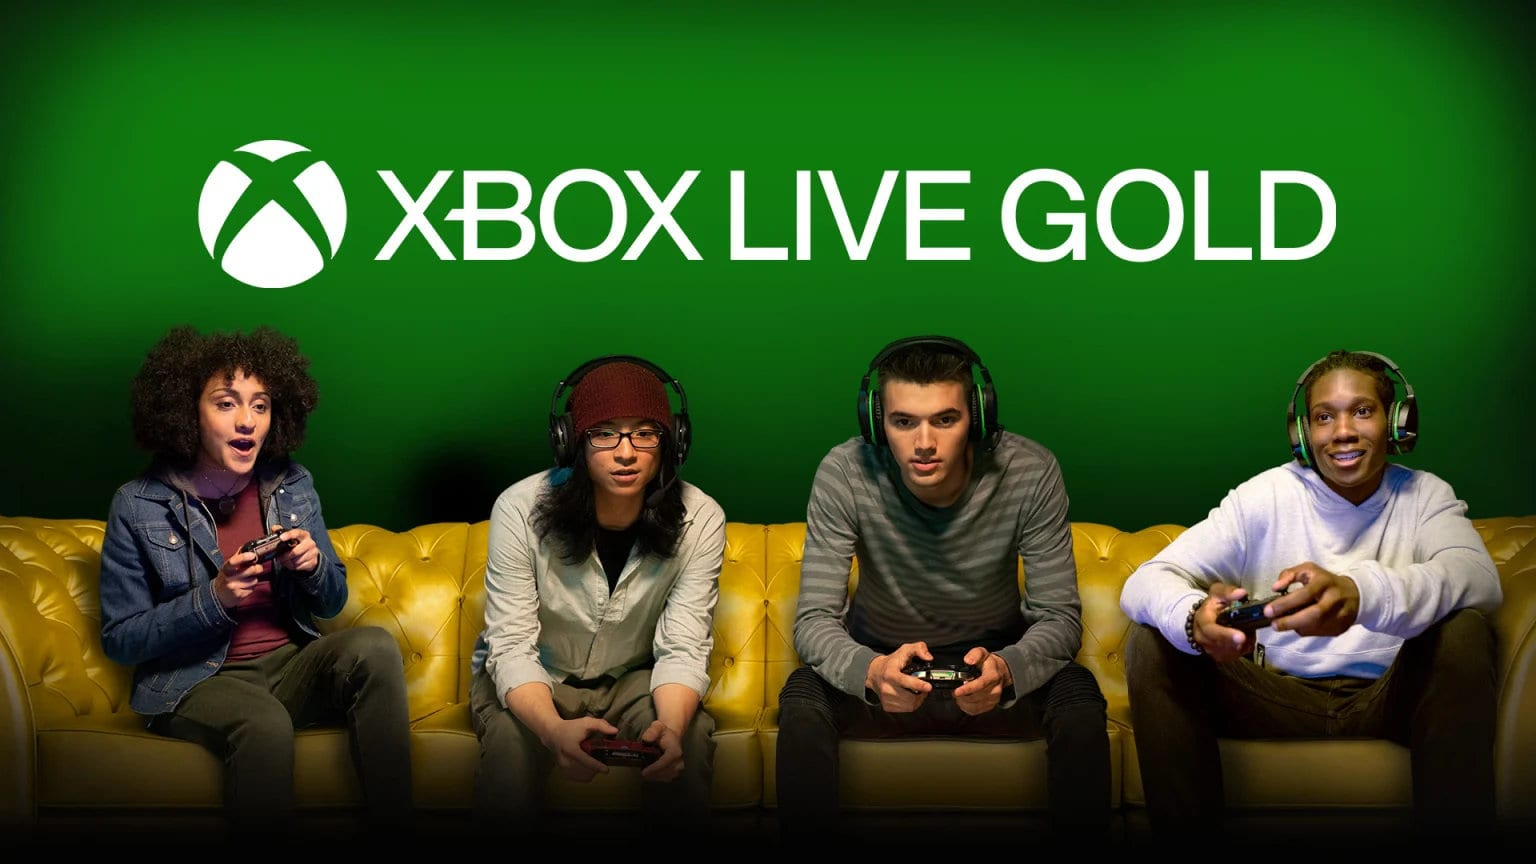 Rumours Suggest Microsoft Is Planning To Ditch Xbox Live Gold